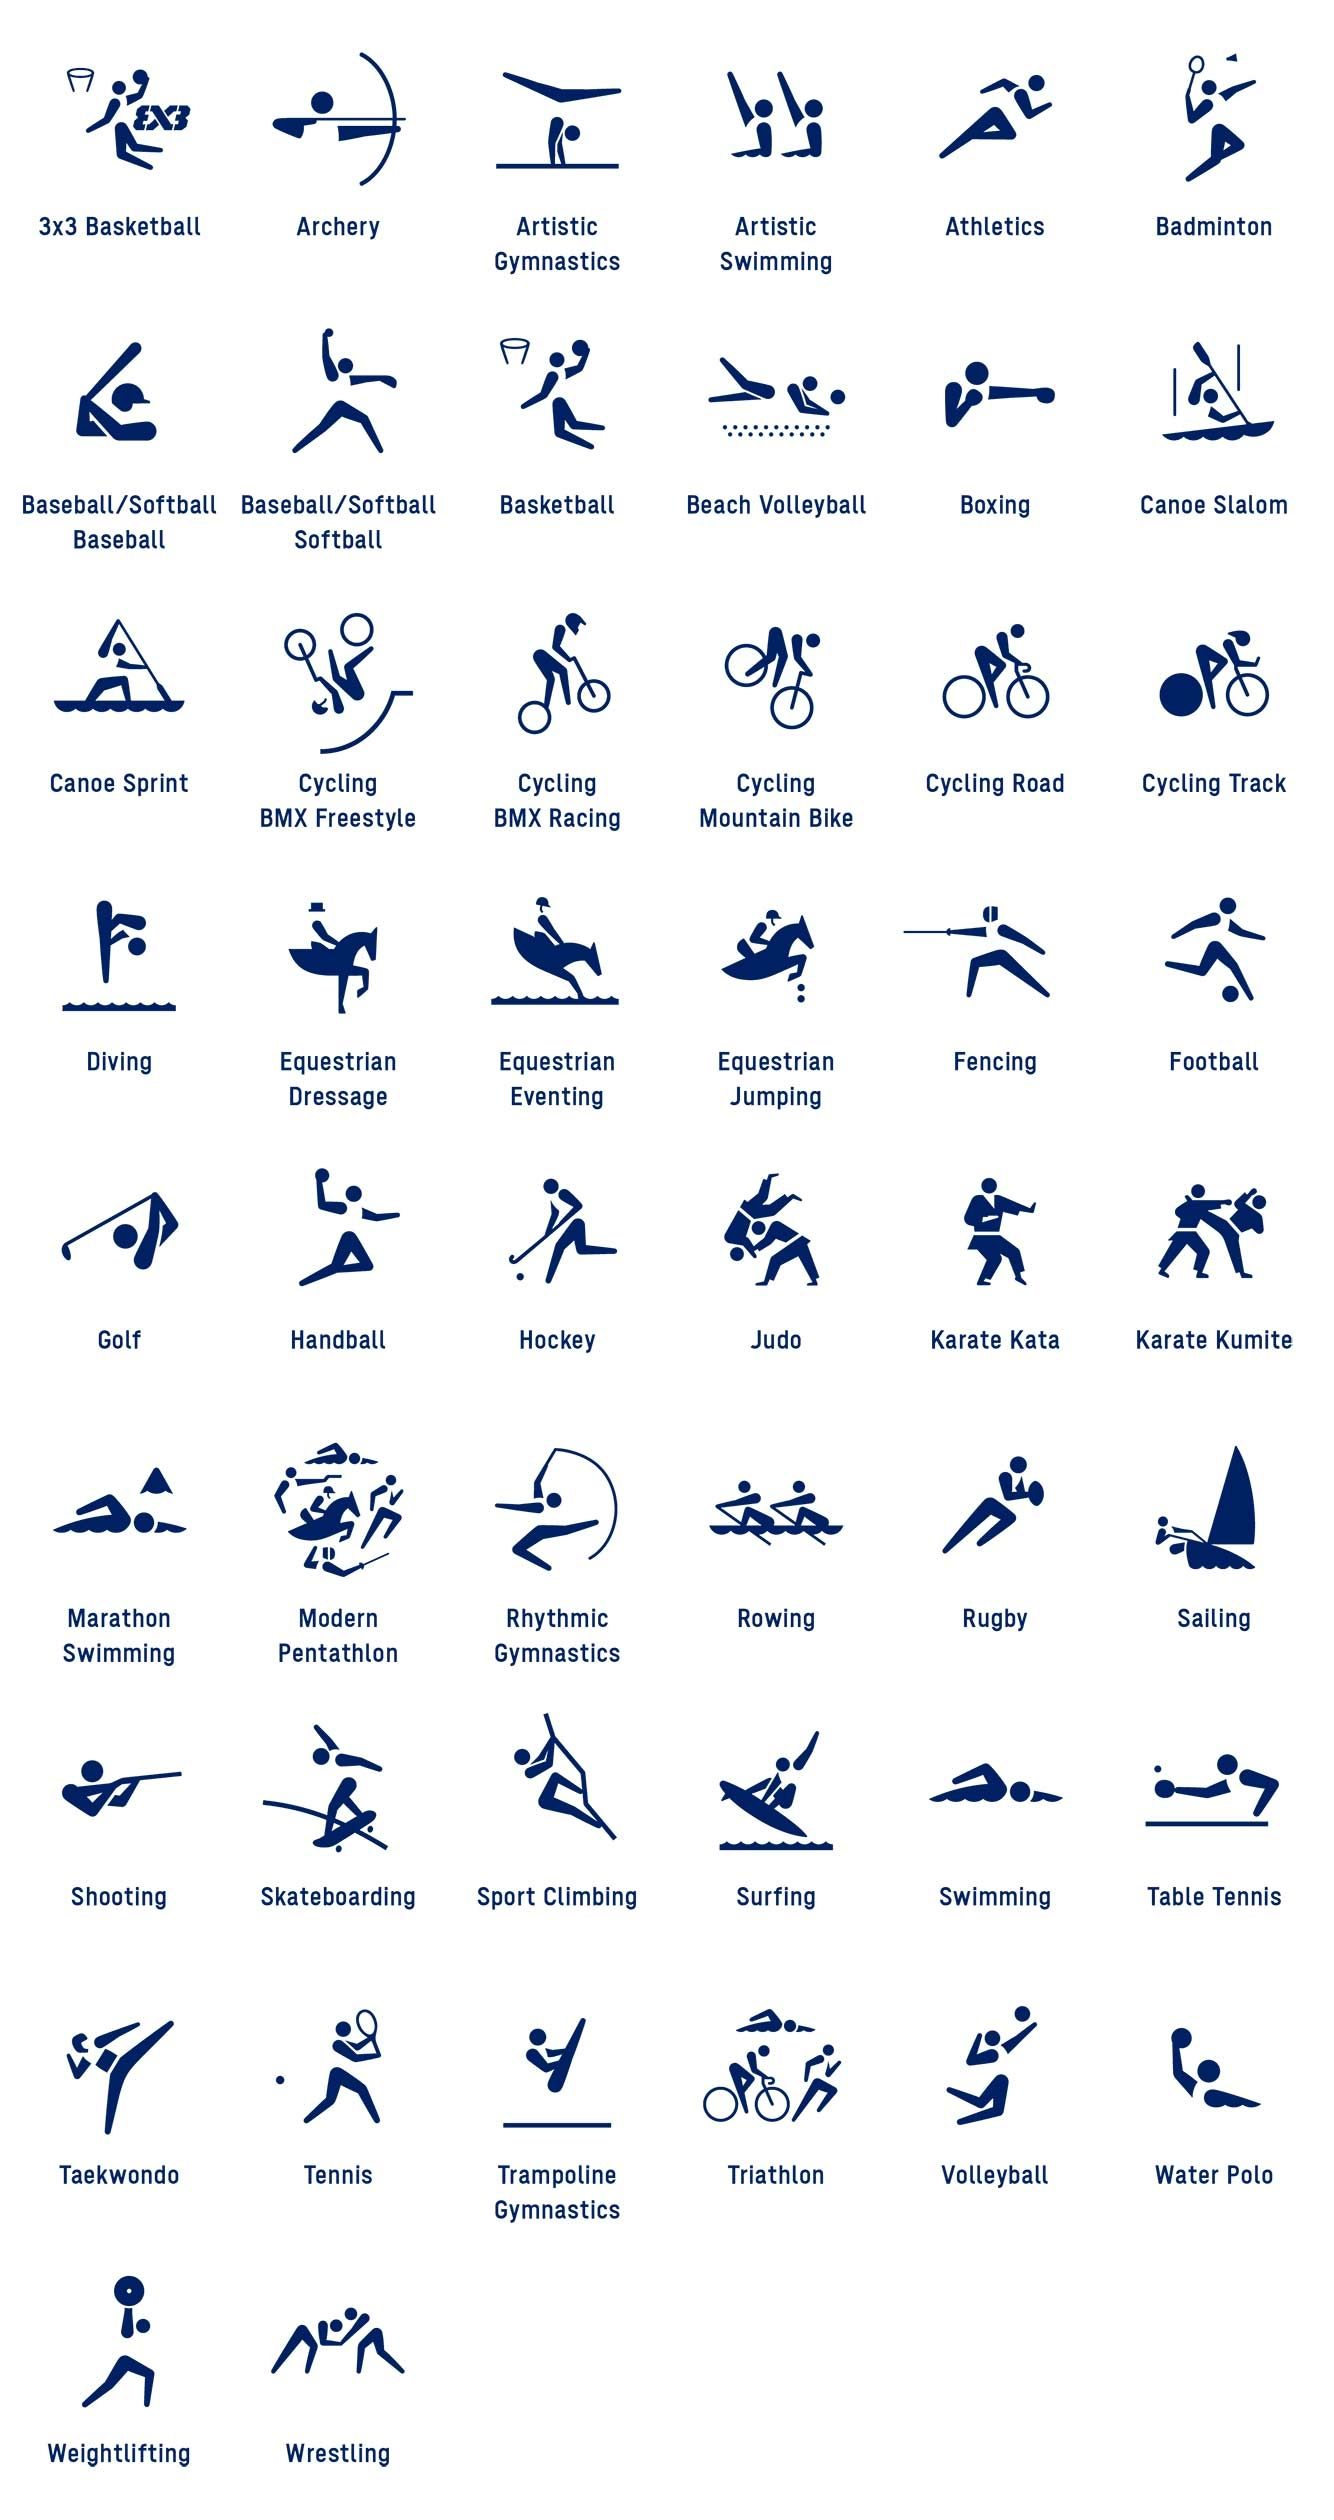 Tokyo 2020 Unveils Olympic Games Sport Pictograms Designs Embody The Artistry Of Athletes In Action The To Tokyo Olympics Olympic Games Sports Olympic Games